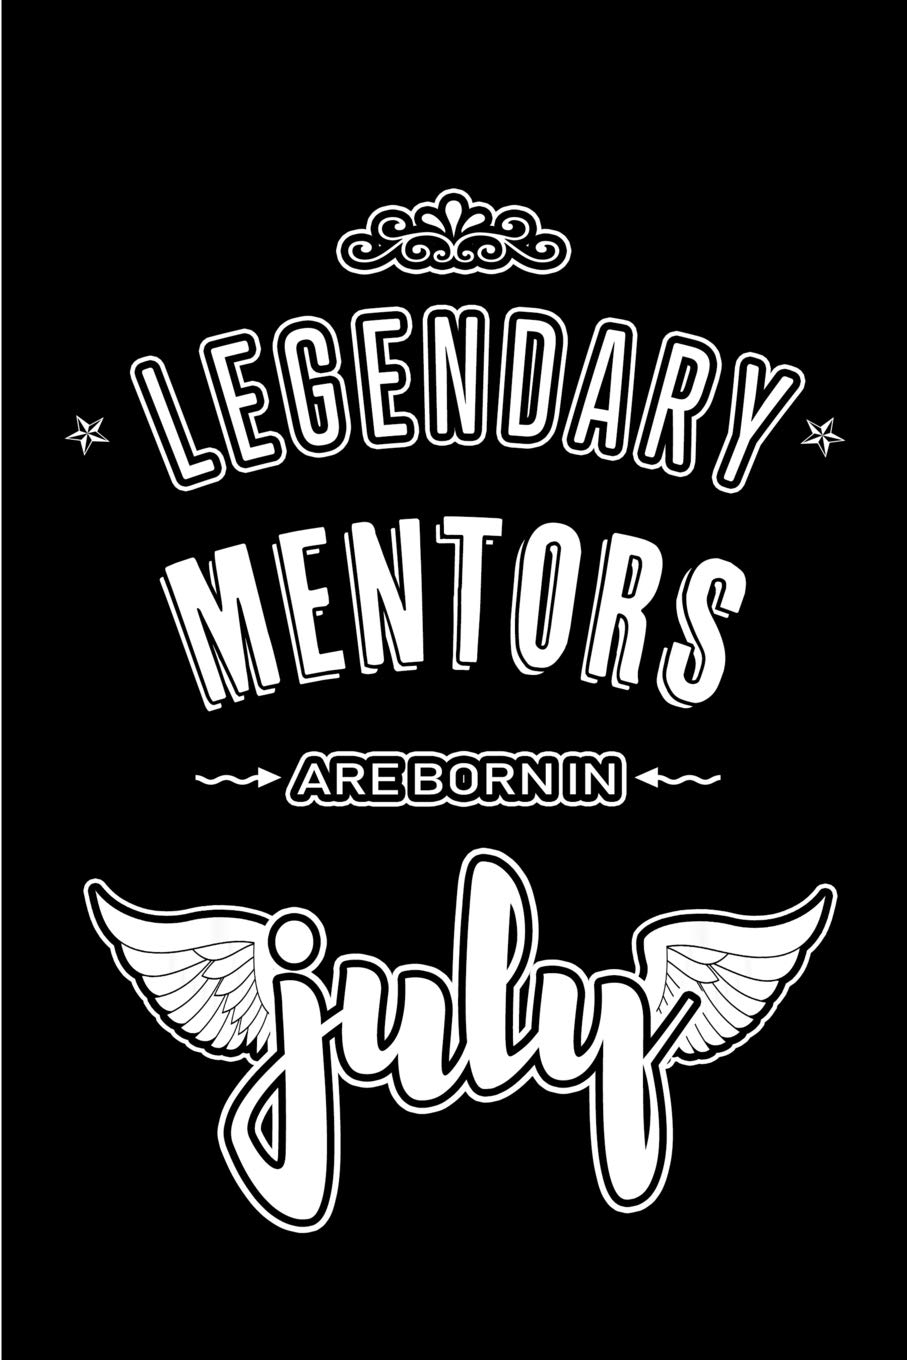 Amazon Com Legendary Mentors Are Born In July Blank Lined Mentor Journal Notebooks Diary As Appreciation Birthday Welcome Farewell Thank You Christmas Graduation Gifts Alternative To Birthday Card 9781077244351 Publishing Lovely